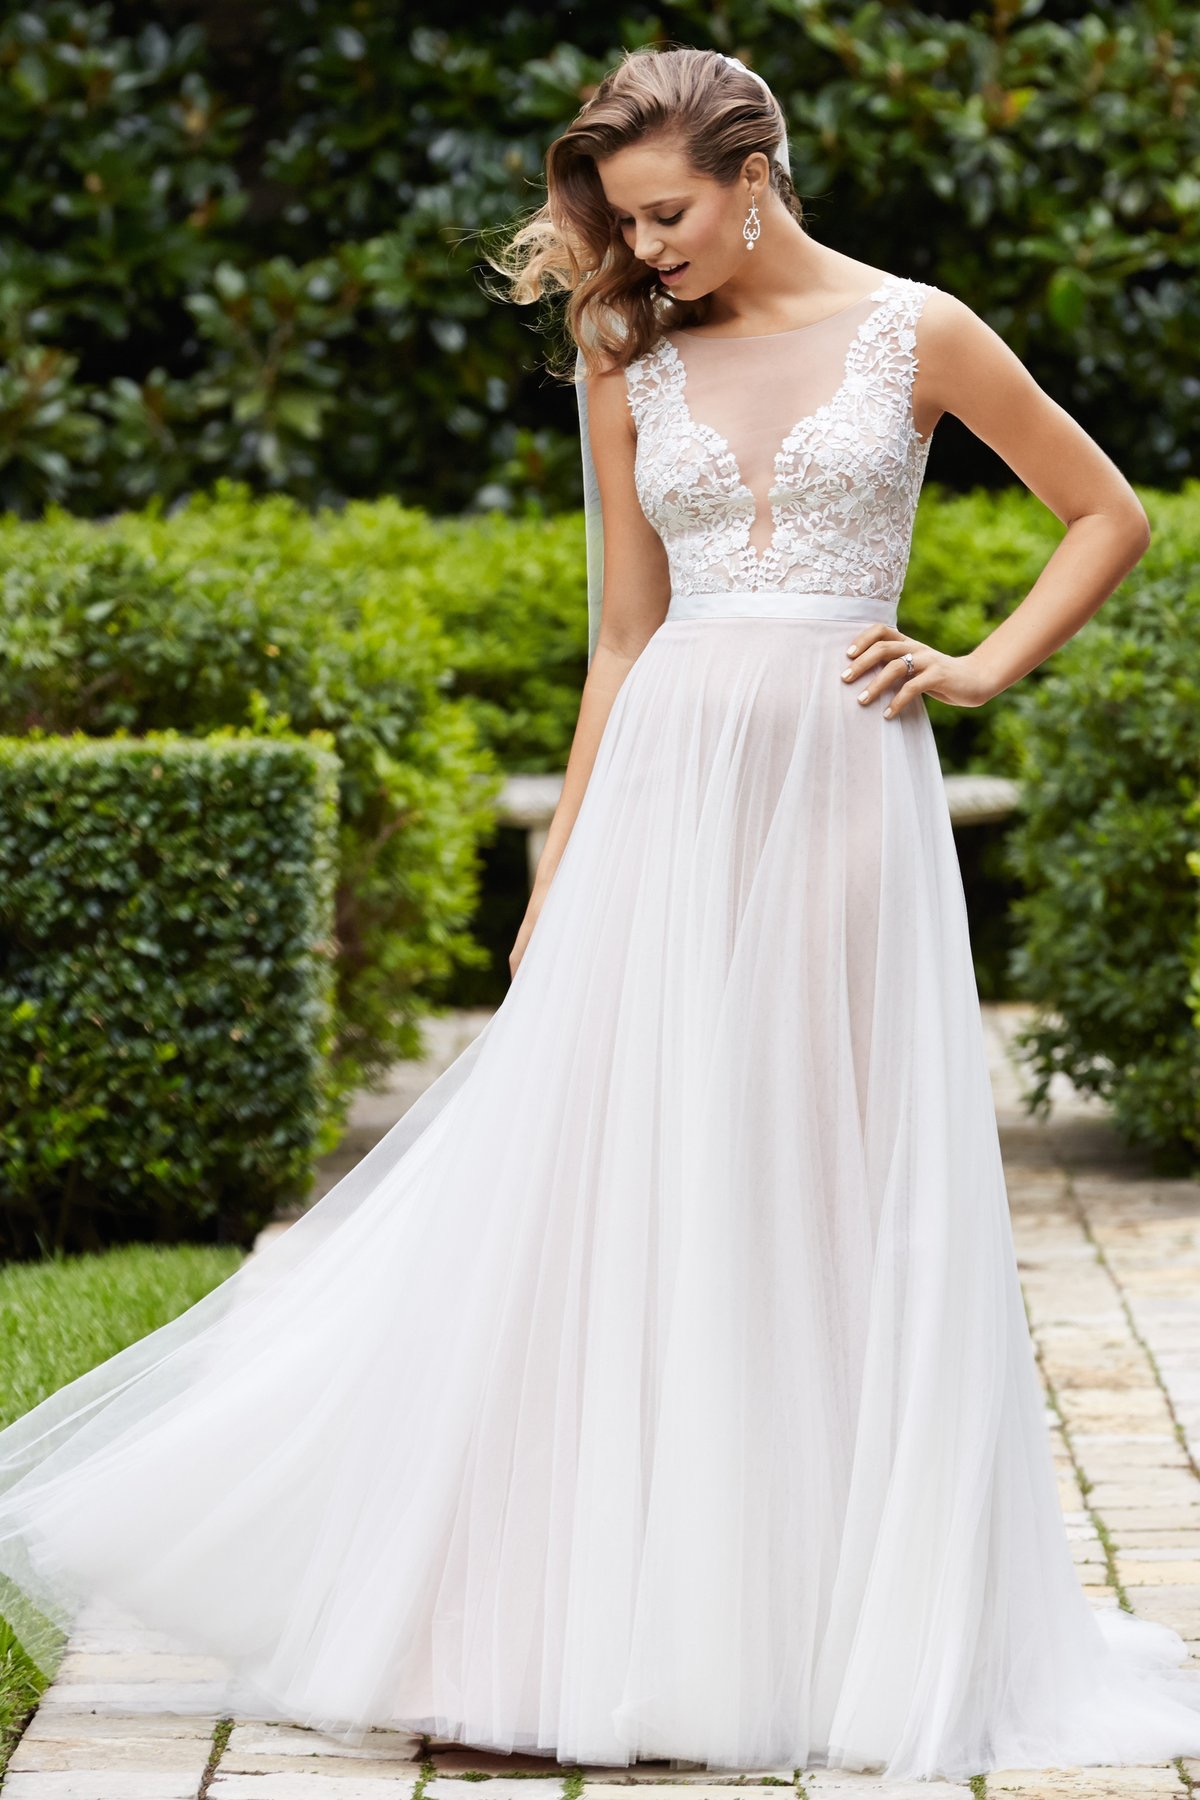 Marnie Wtoo by Watters - The Blushing Bride boutique in Frisco, Texas